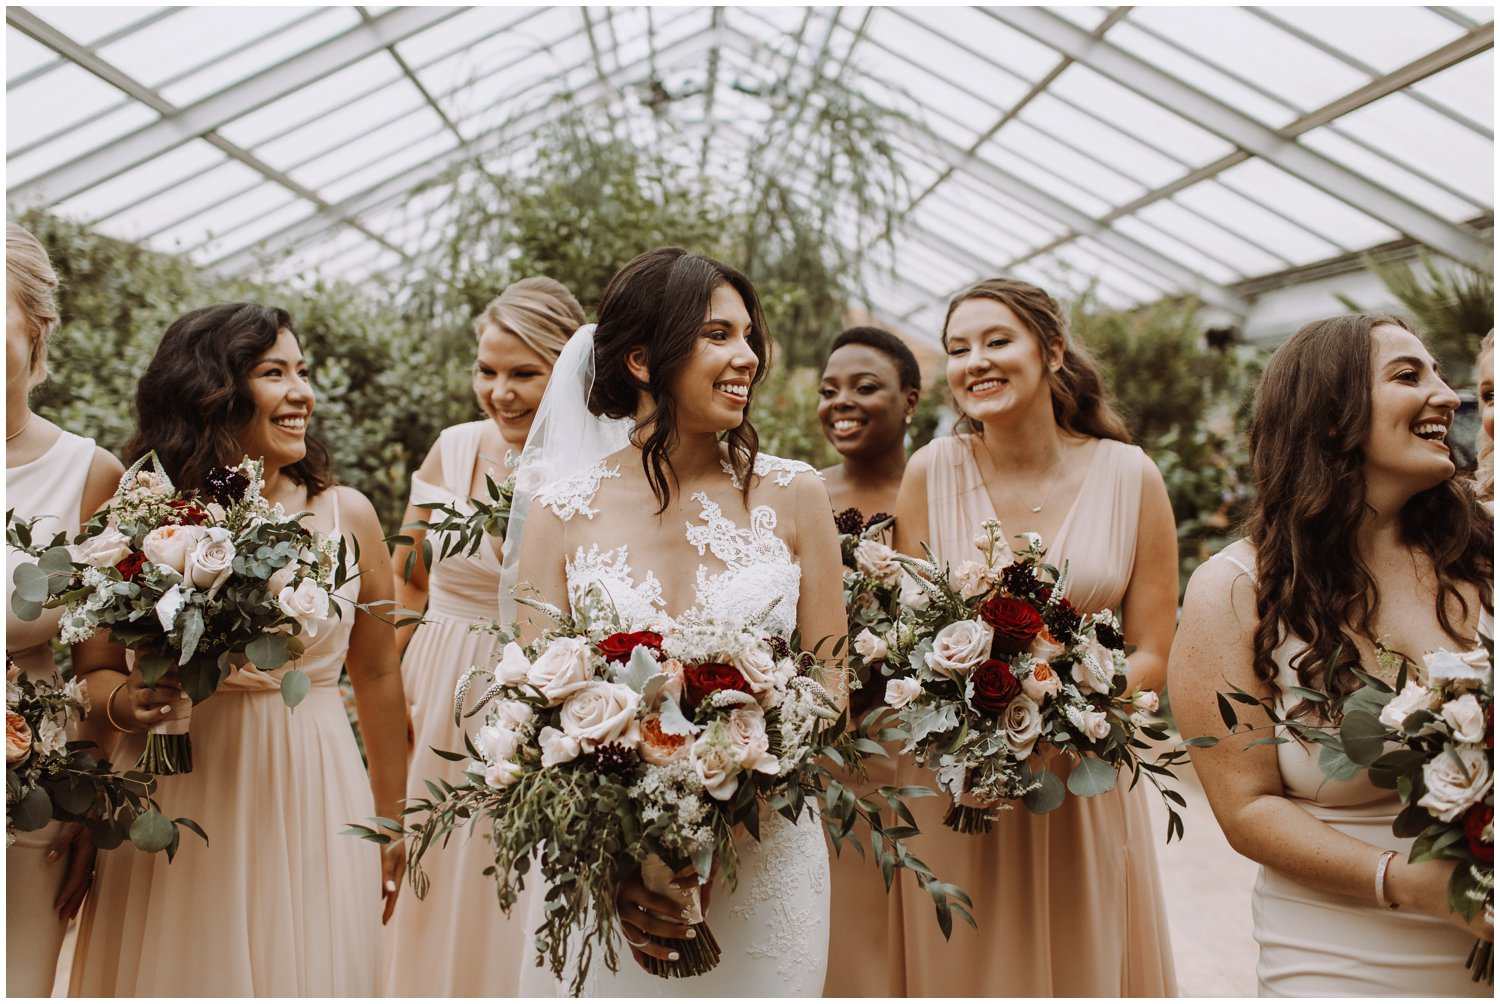 Baltimore wedding photographer | bridal party greenhouse portraits | greenhouse wedding | Rawlings conservatory wedding